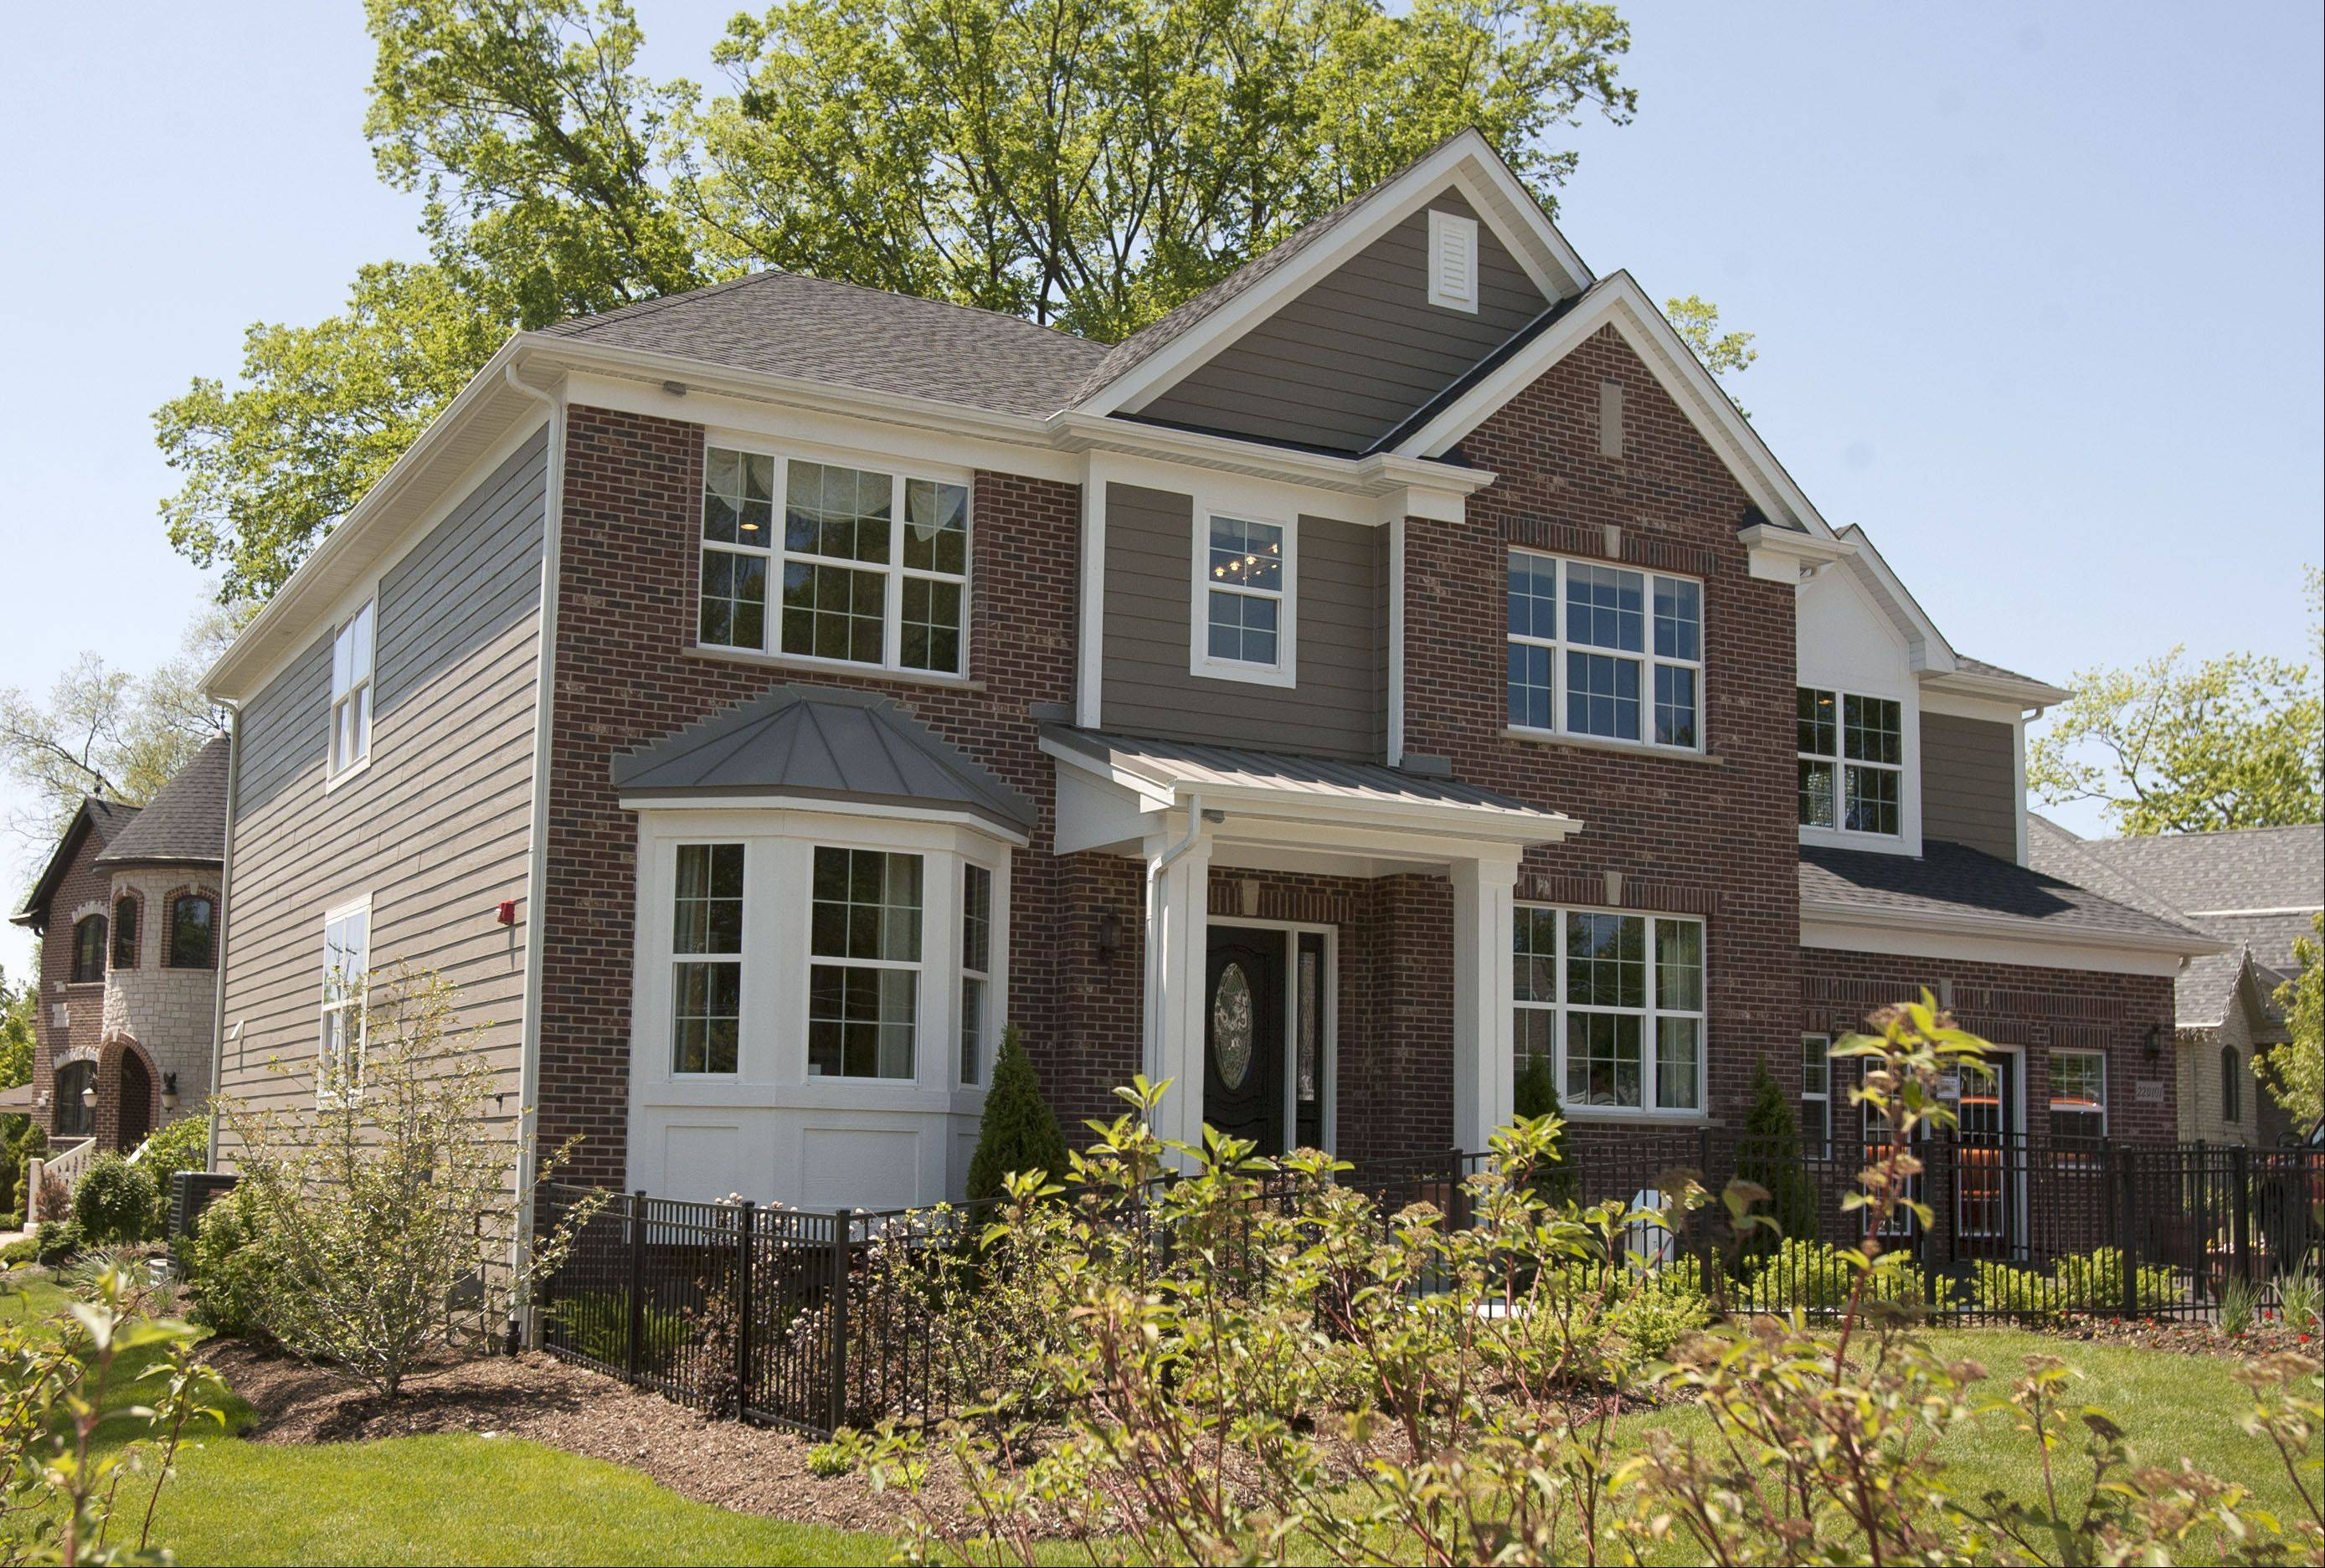 Glenrise Grove in Glen Ellyn will feature 34 two-story homes, including this Morton model, one of four available floor plans.